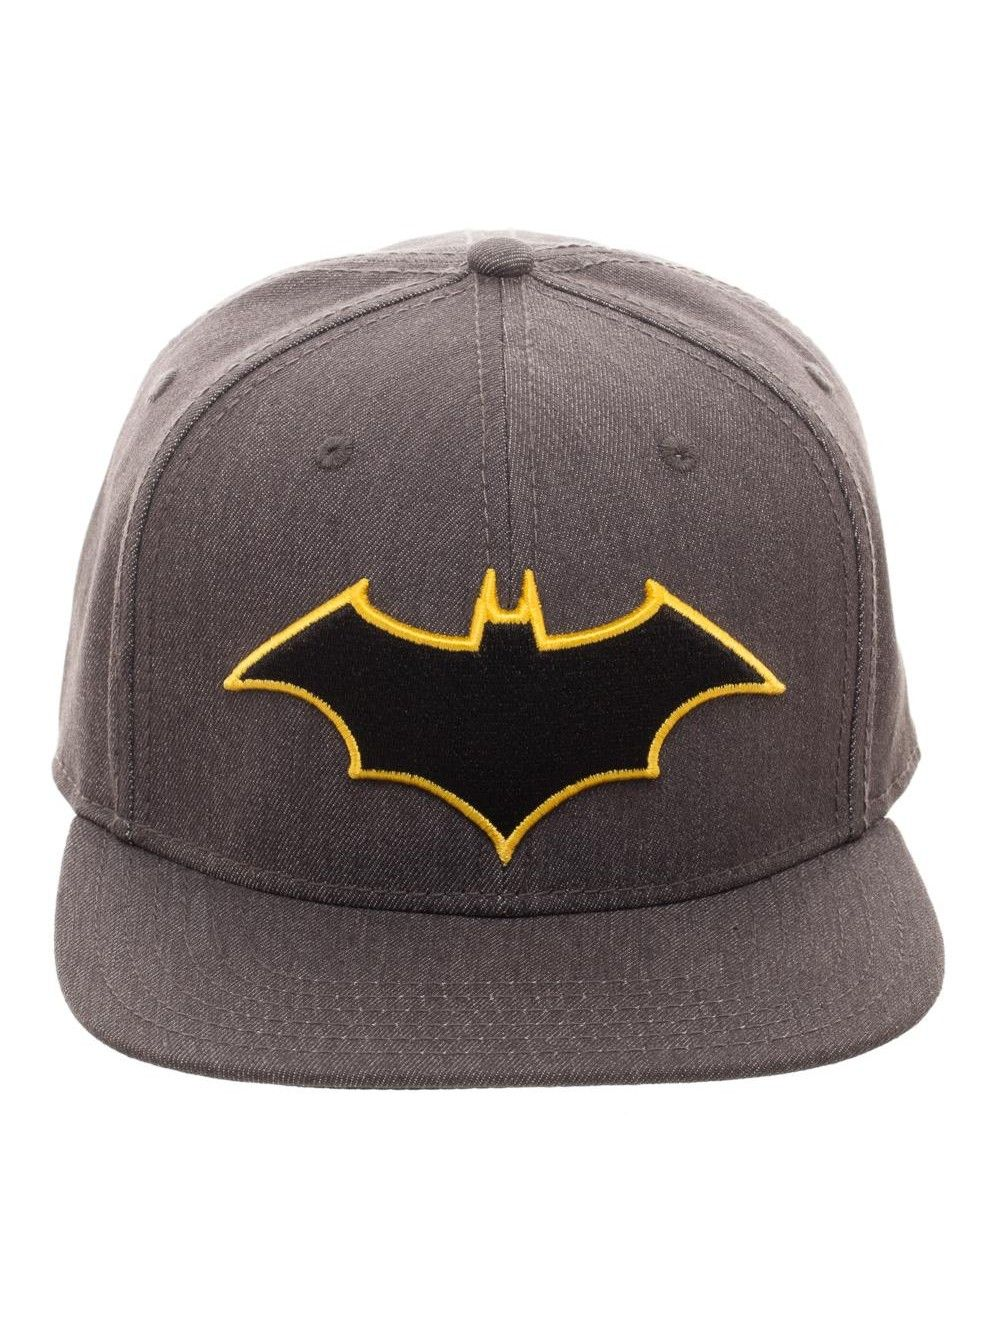 03467d27c715c BATMAN LOGO FLATBILL Flex Cap SnapBack Baseball Caps Hats Black (New ...